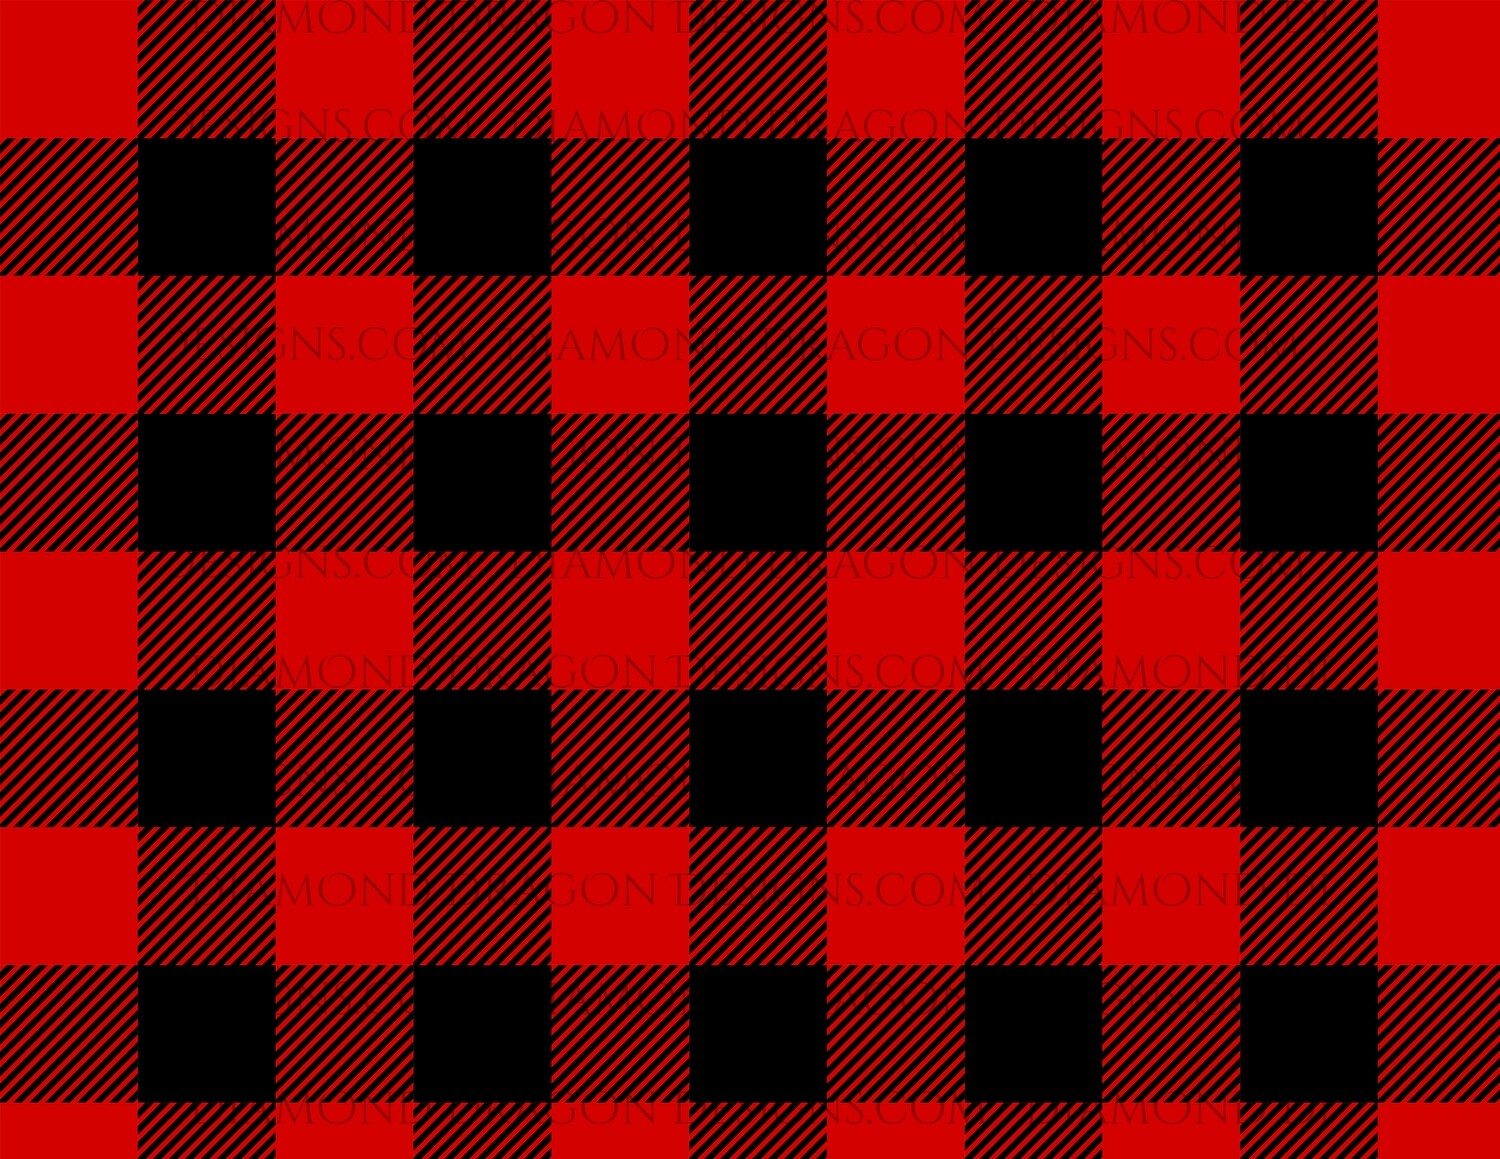 Full Page -  Red Buffalo Plaid, Black and Red, Full Page Design, Digital Image